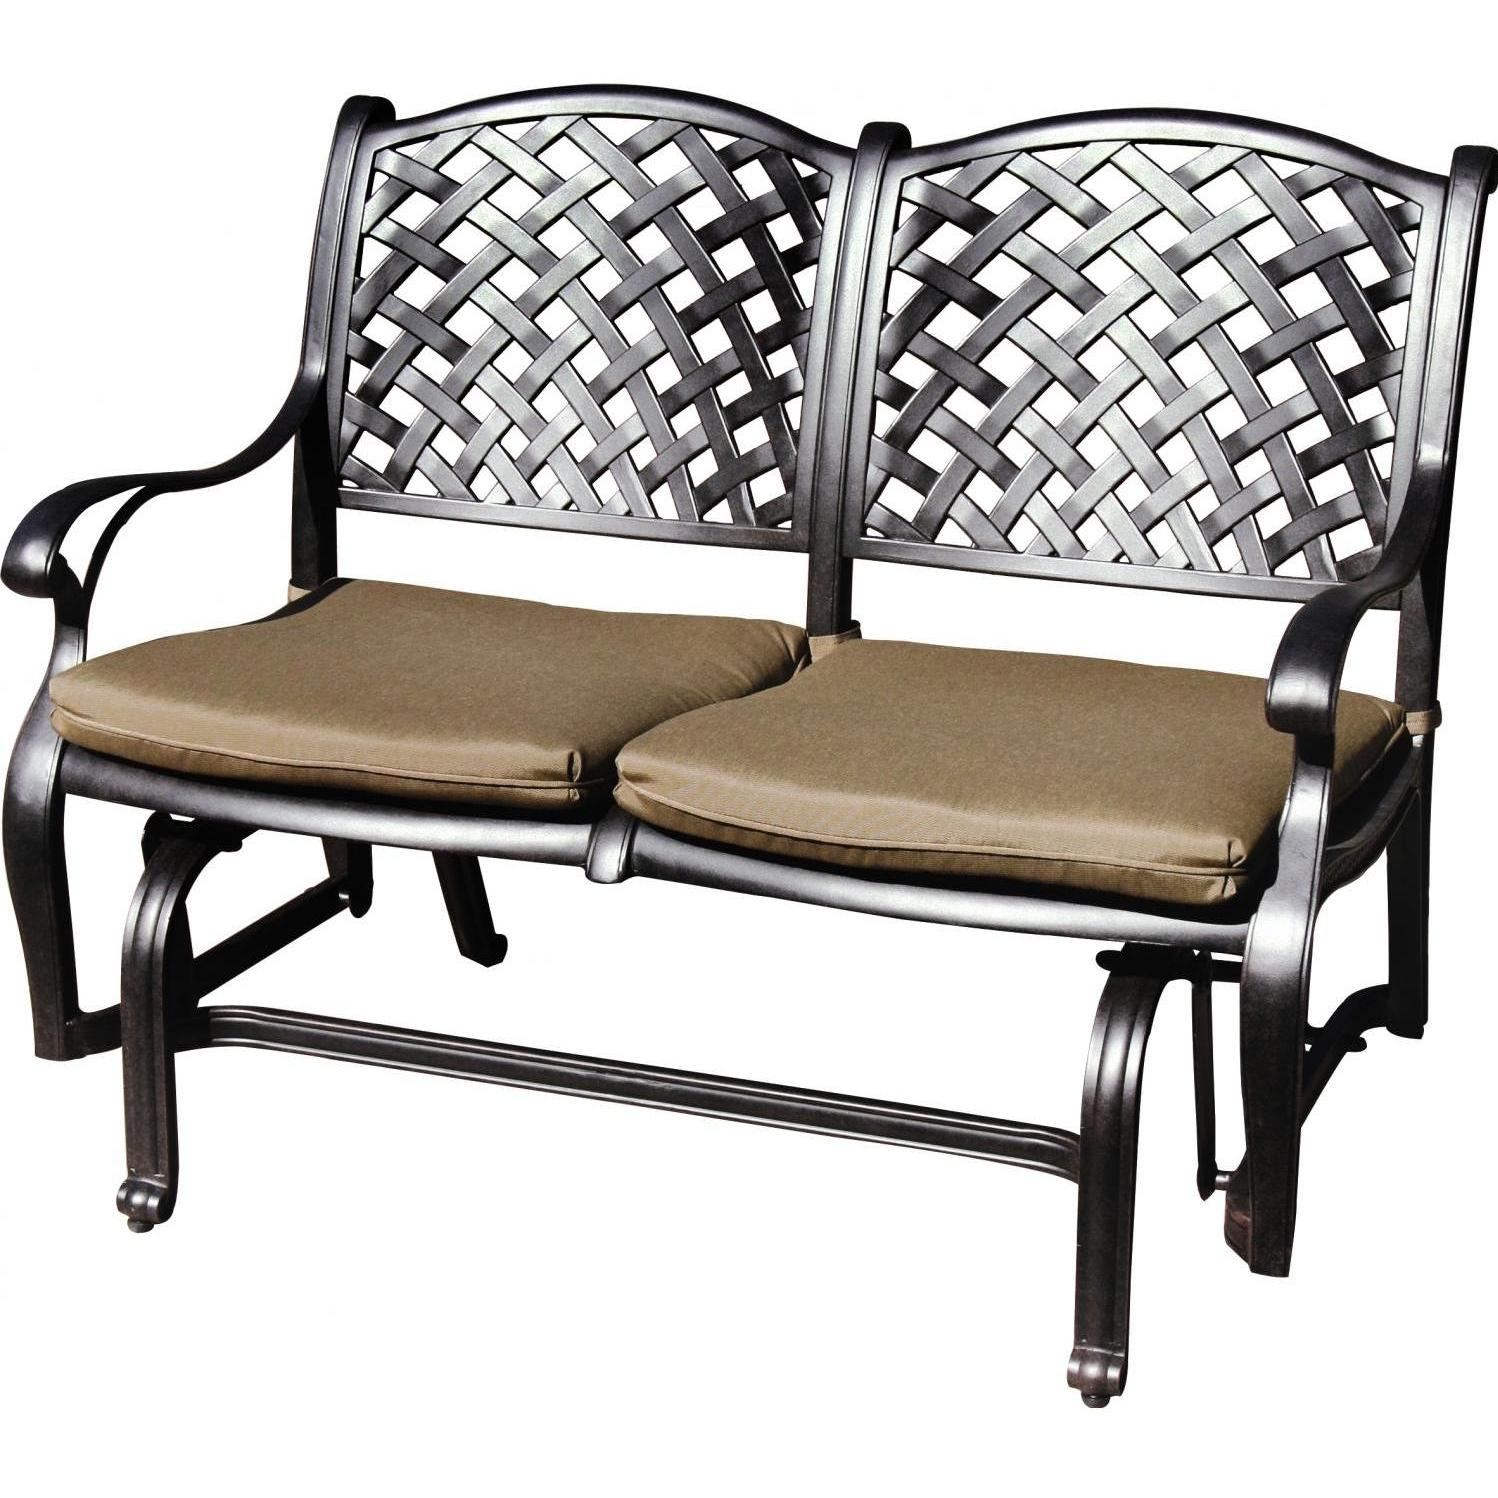 Darlee Nassau Cast Aluminum Patio Bench Glider Pertaining To Aluminum Glider Benches With Cushion (View 2 of 25)